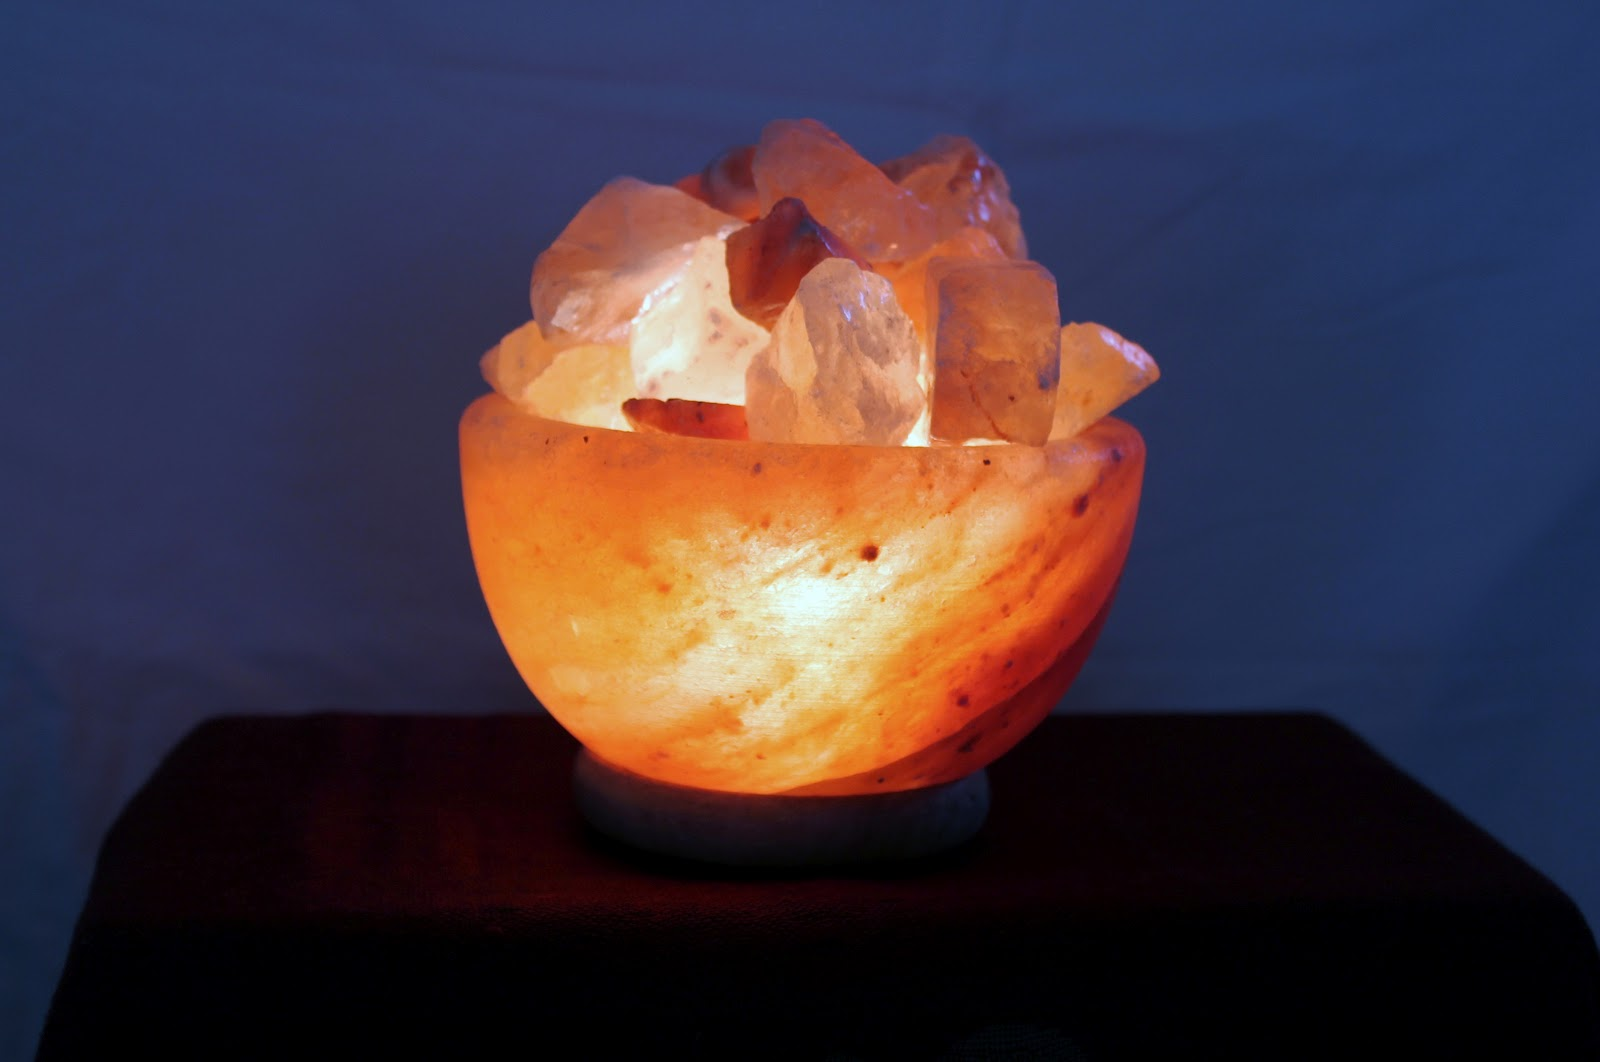 Salt Lamp n?tur Museum quality insects, butterflies and natural history collectibles ...